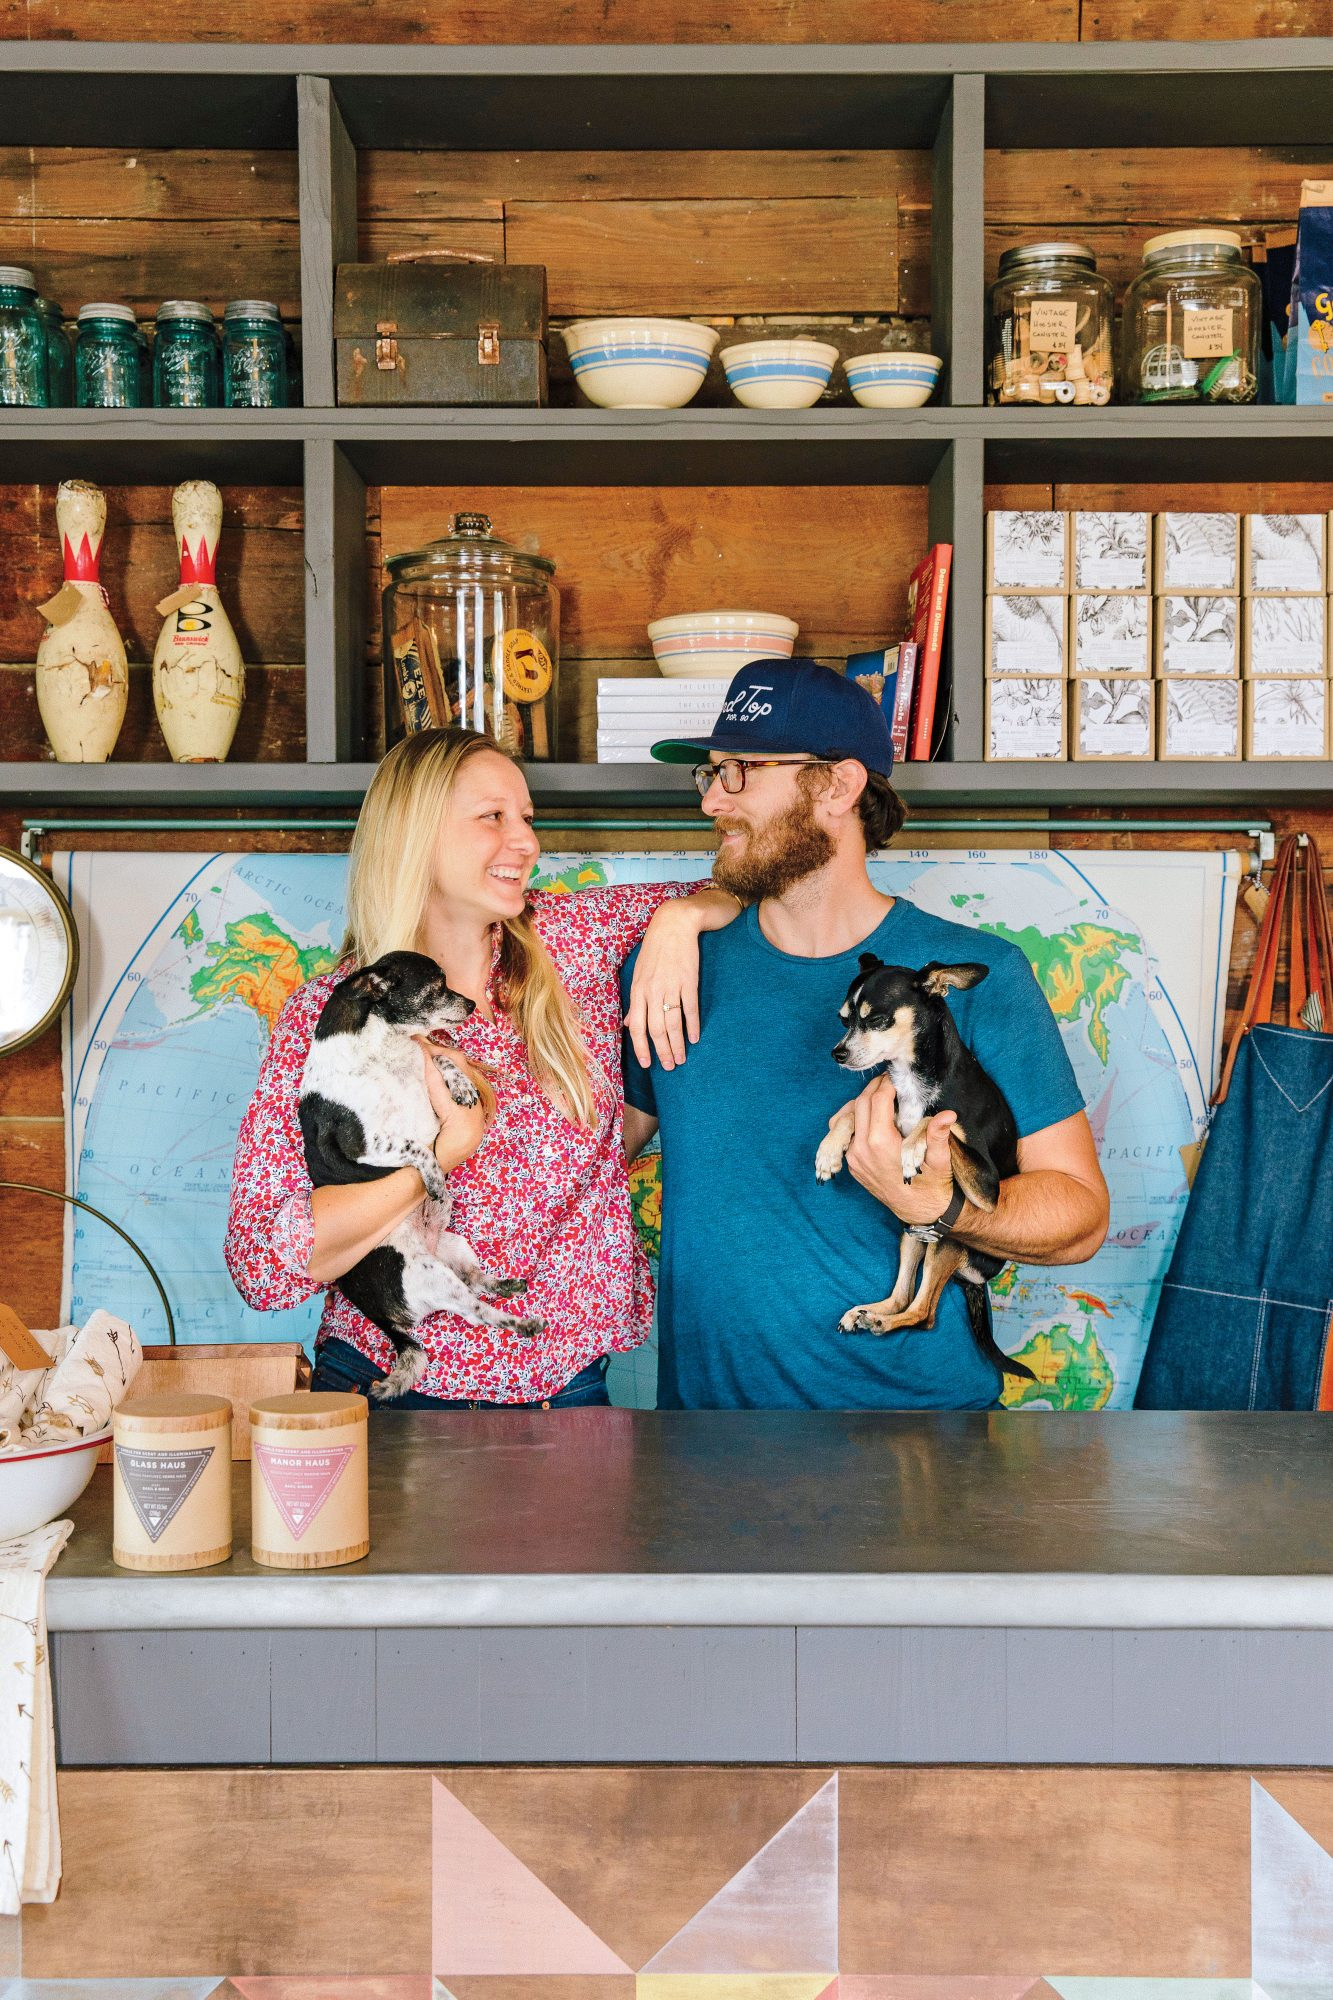 Nick Mosley and Ryann Ford of Townsend Provisions